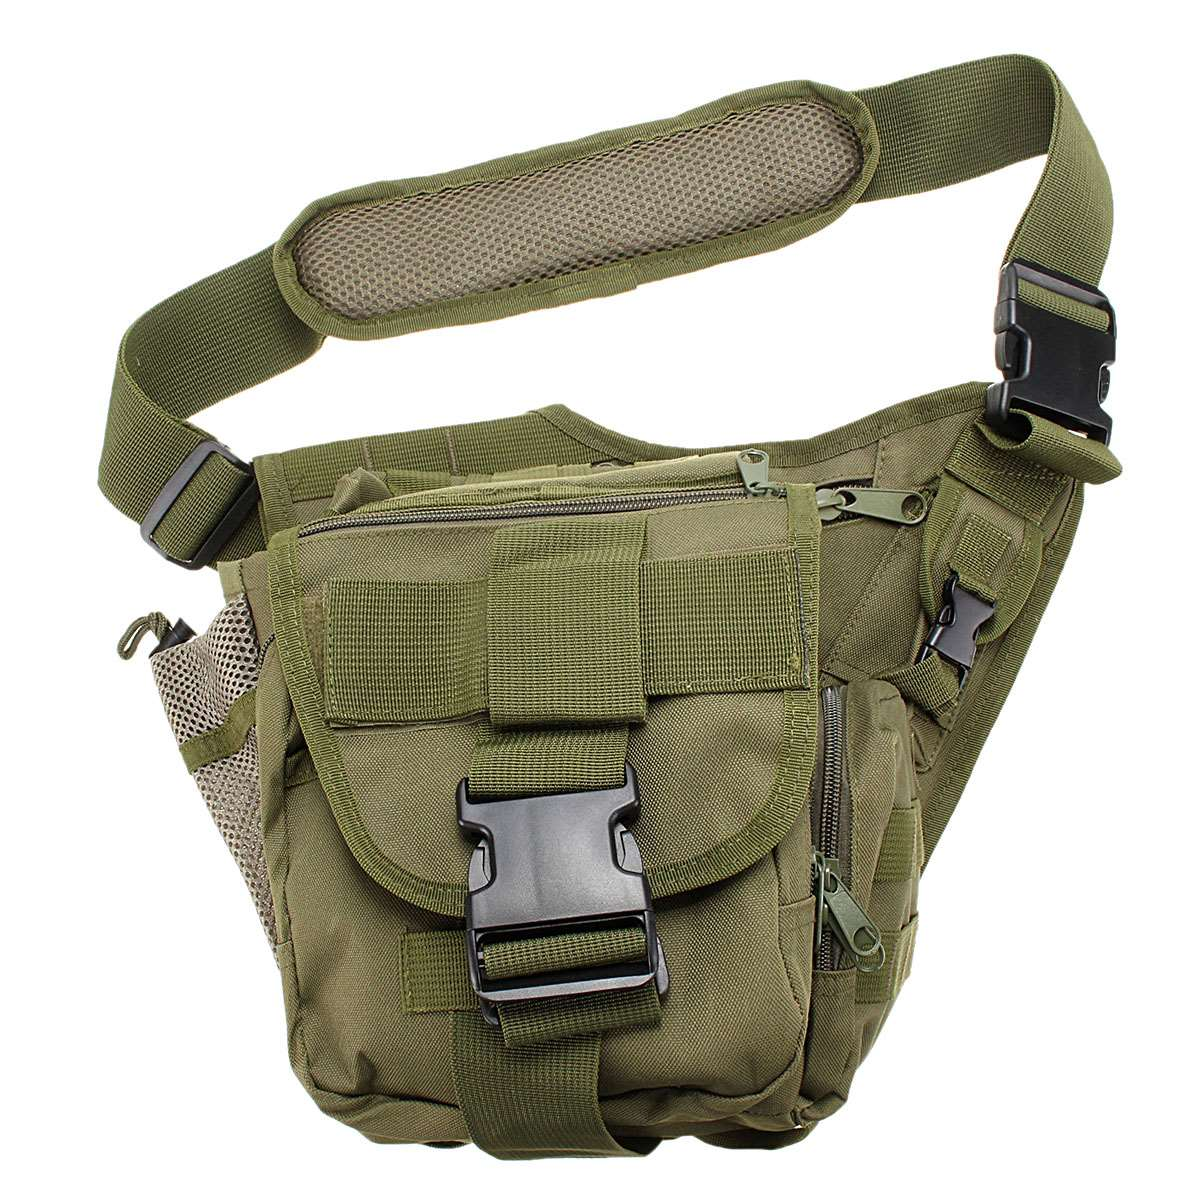 Military Tactical Crossbody Bag Camping Inner Waterproof Male Shoulder Bags Oxford Fabric Molle Camouflage Men Chest Pack(China (Mainland))